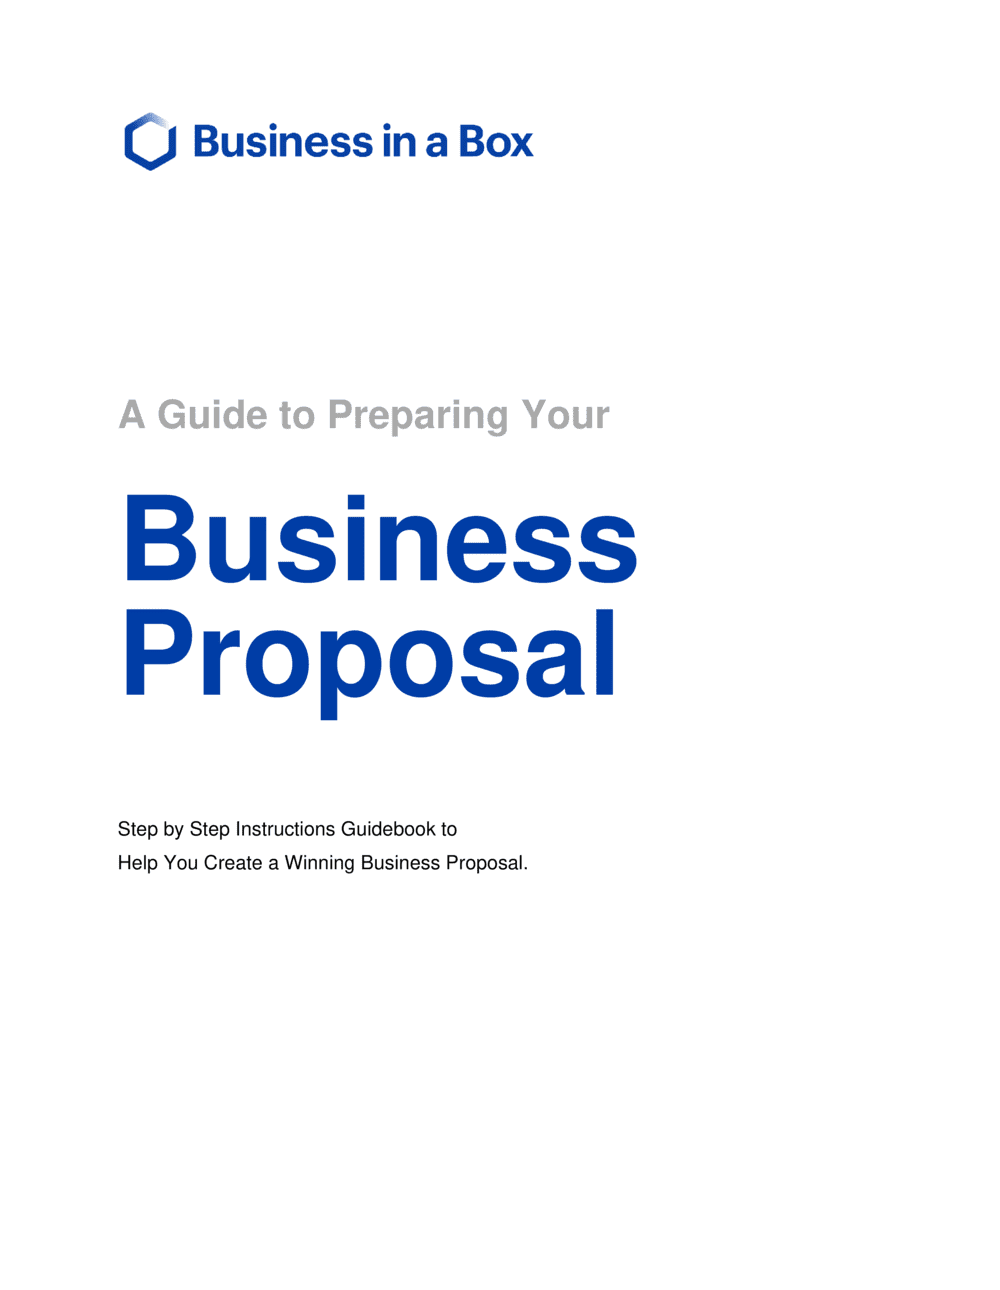 Business-in-a-Box's How To Write A Business Proposal Template